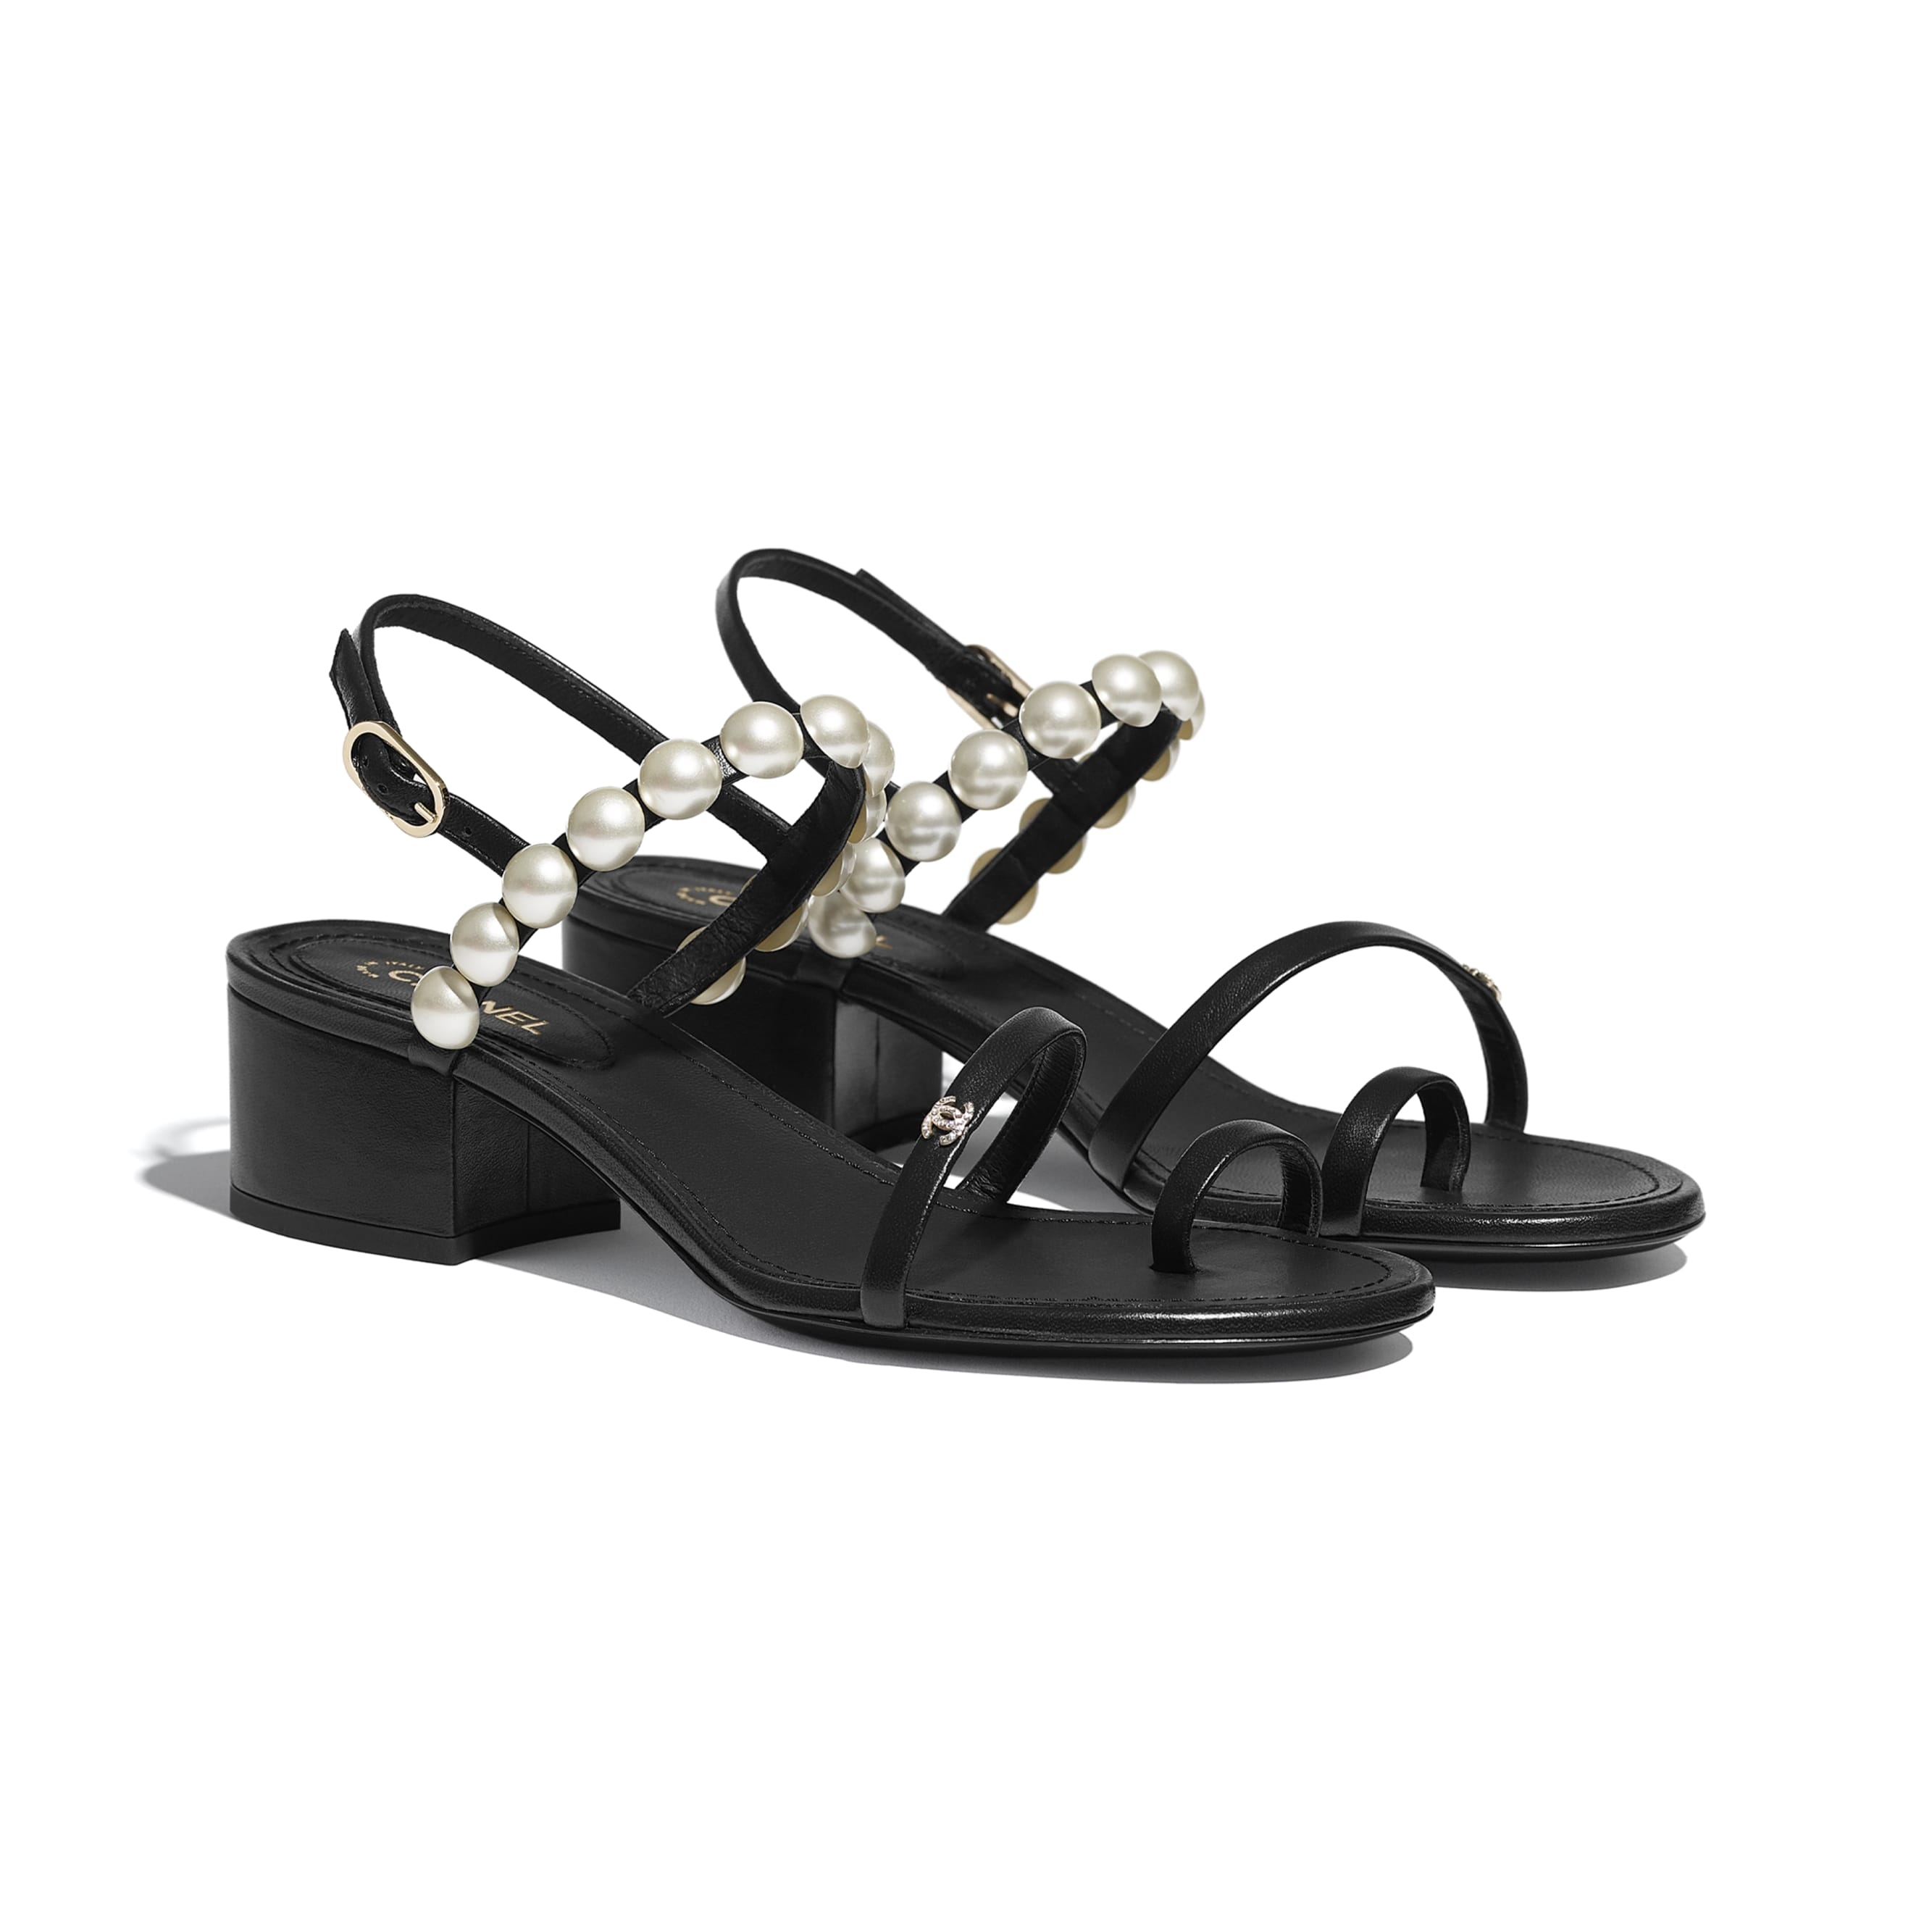 Sandals - Black - Lambskin & Pearls - CHANEL - Alternative view - see standard sized version